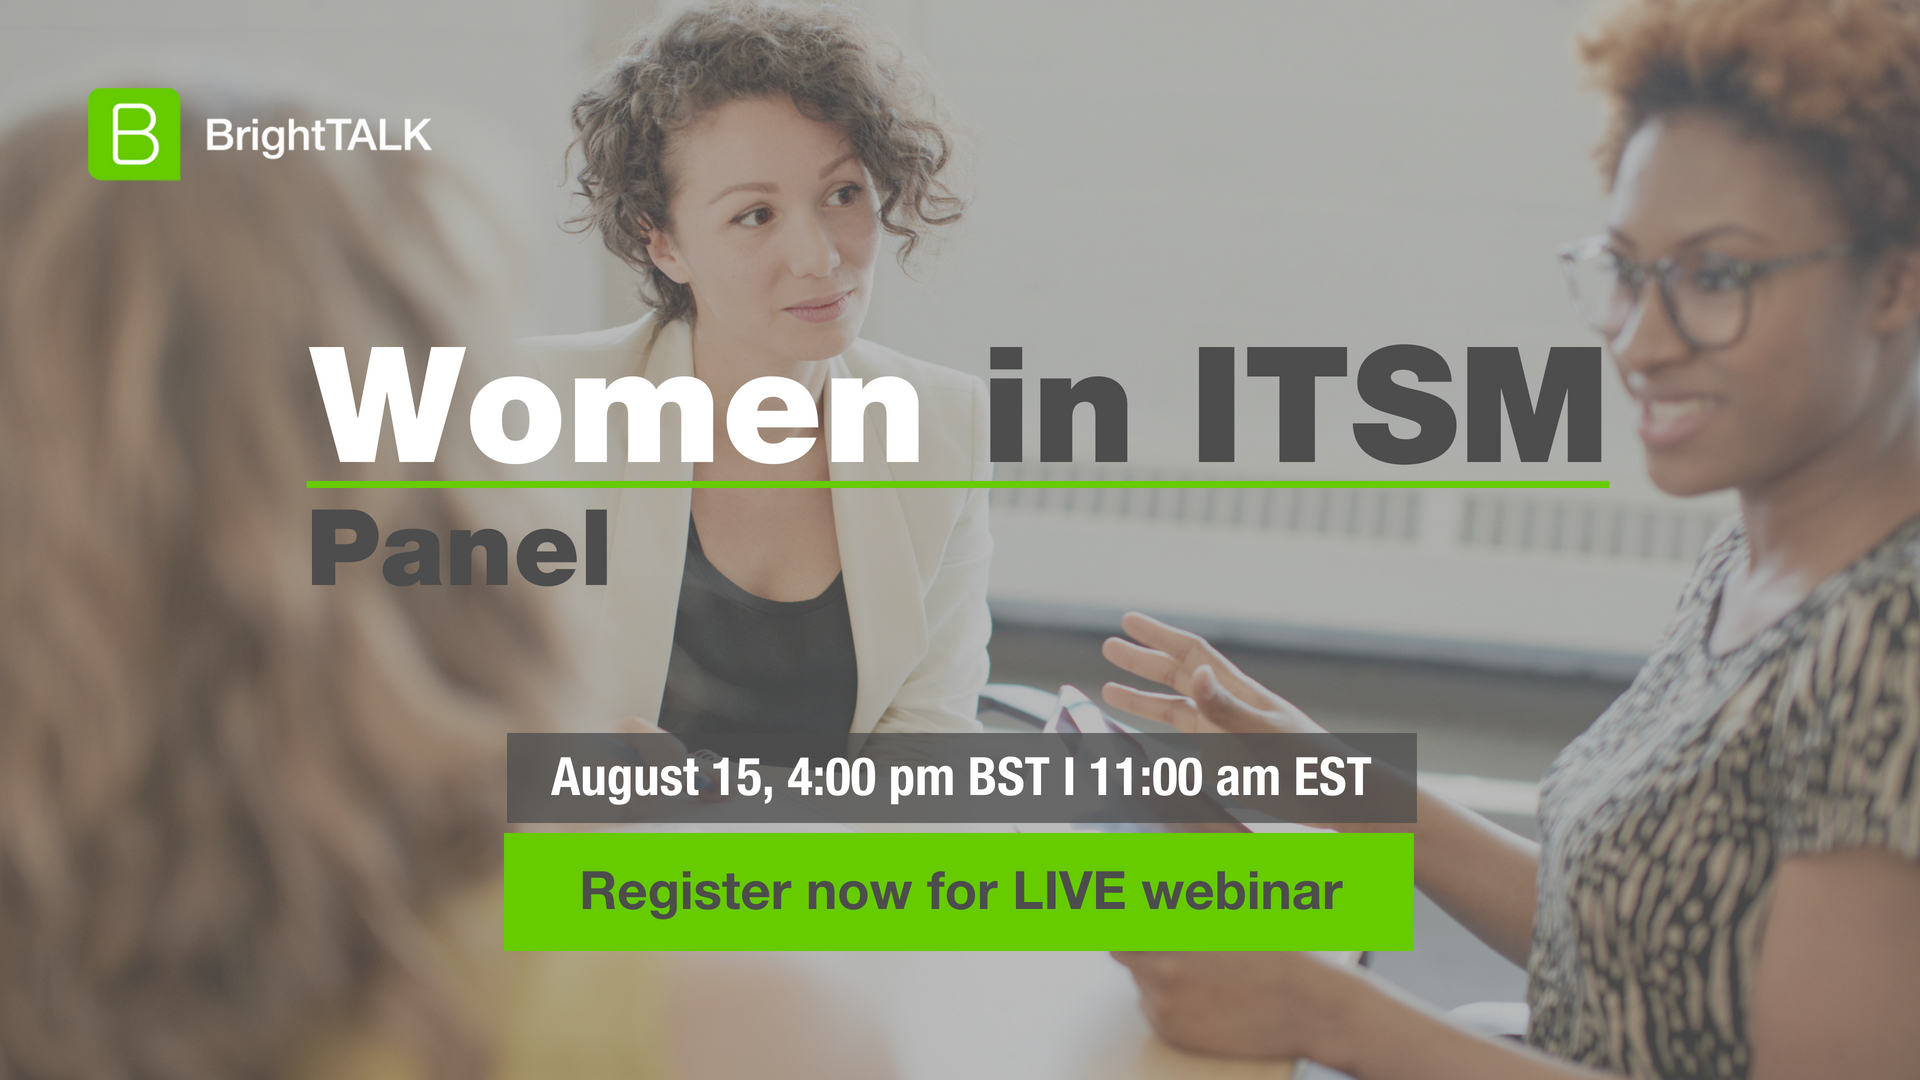 Women in ITSM